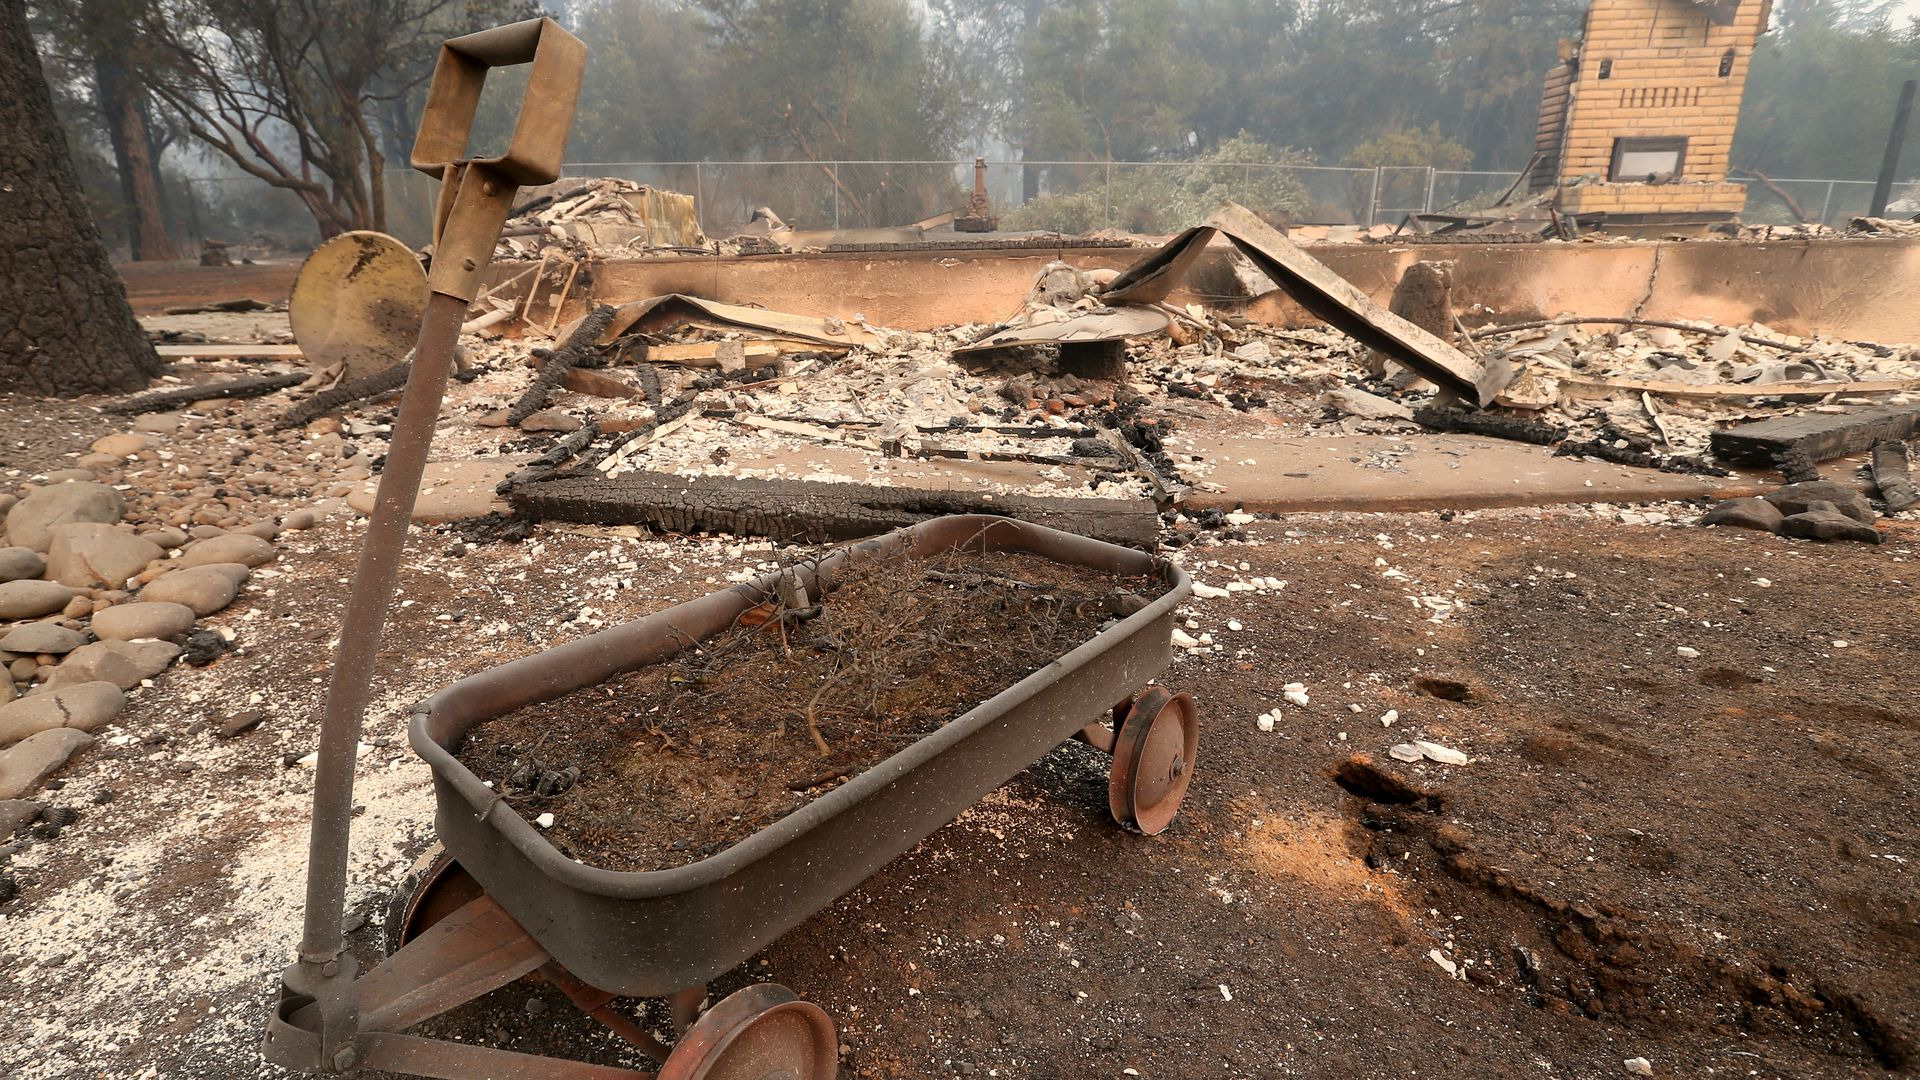 The remains of a house destroyed by the fire in Paradise, California